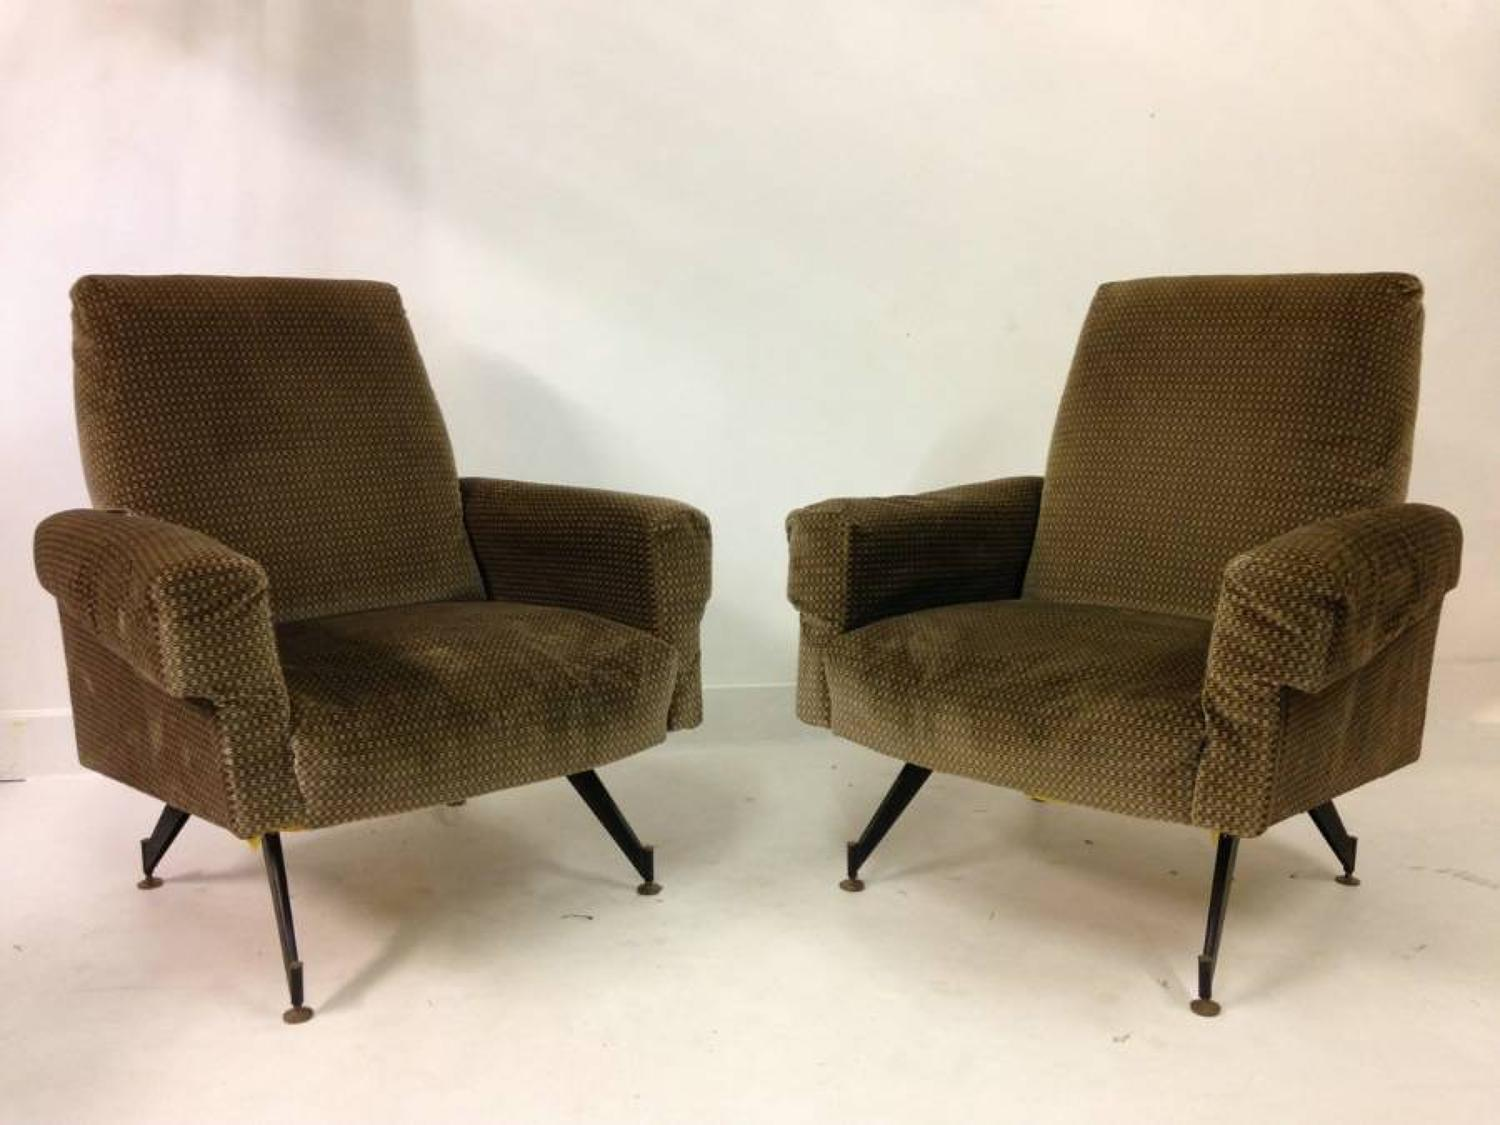 A pair of 1960s Italian armchairs